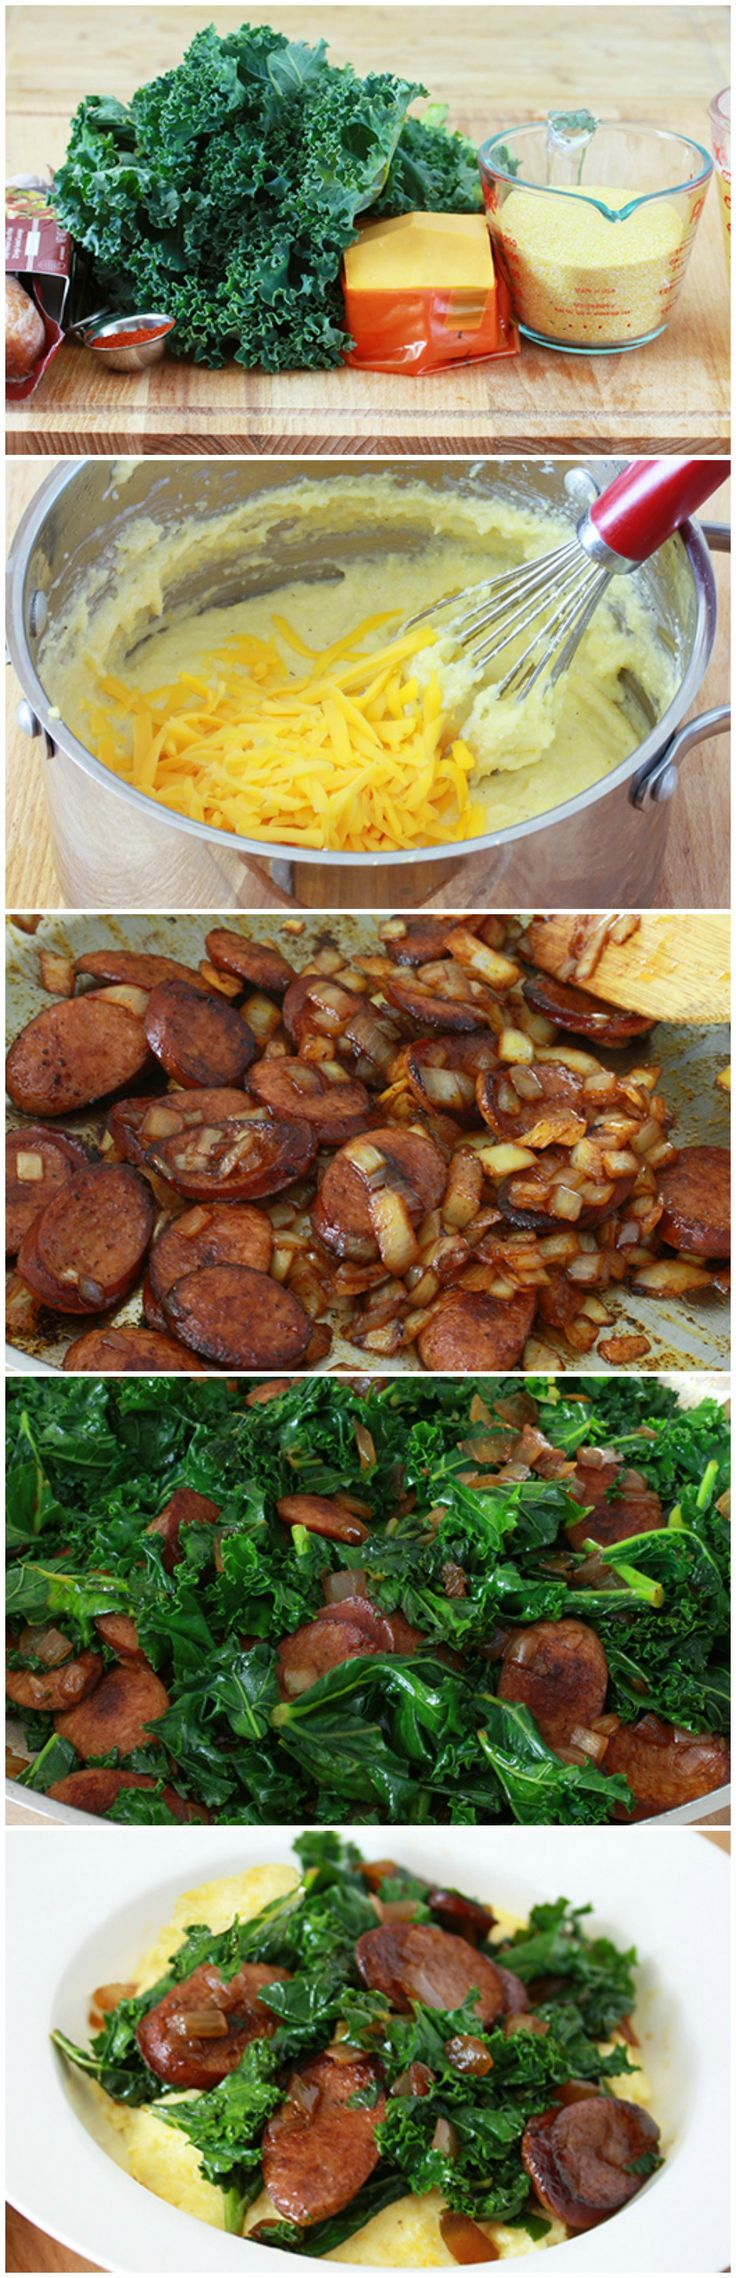 Spicy Sausage, Kale & Cheesy Grits